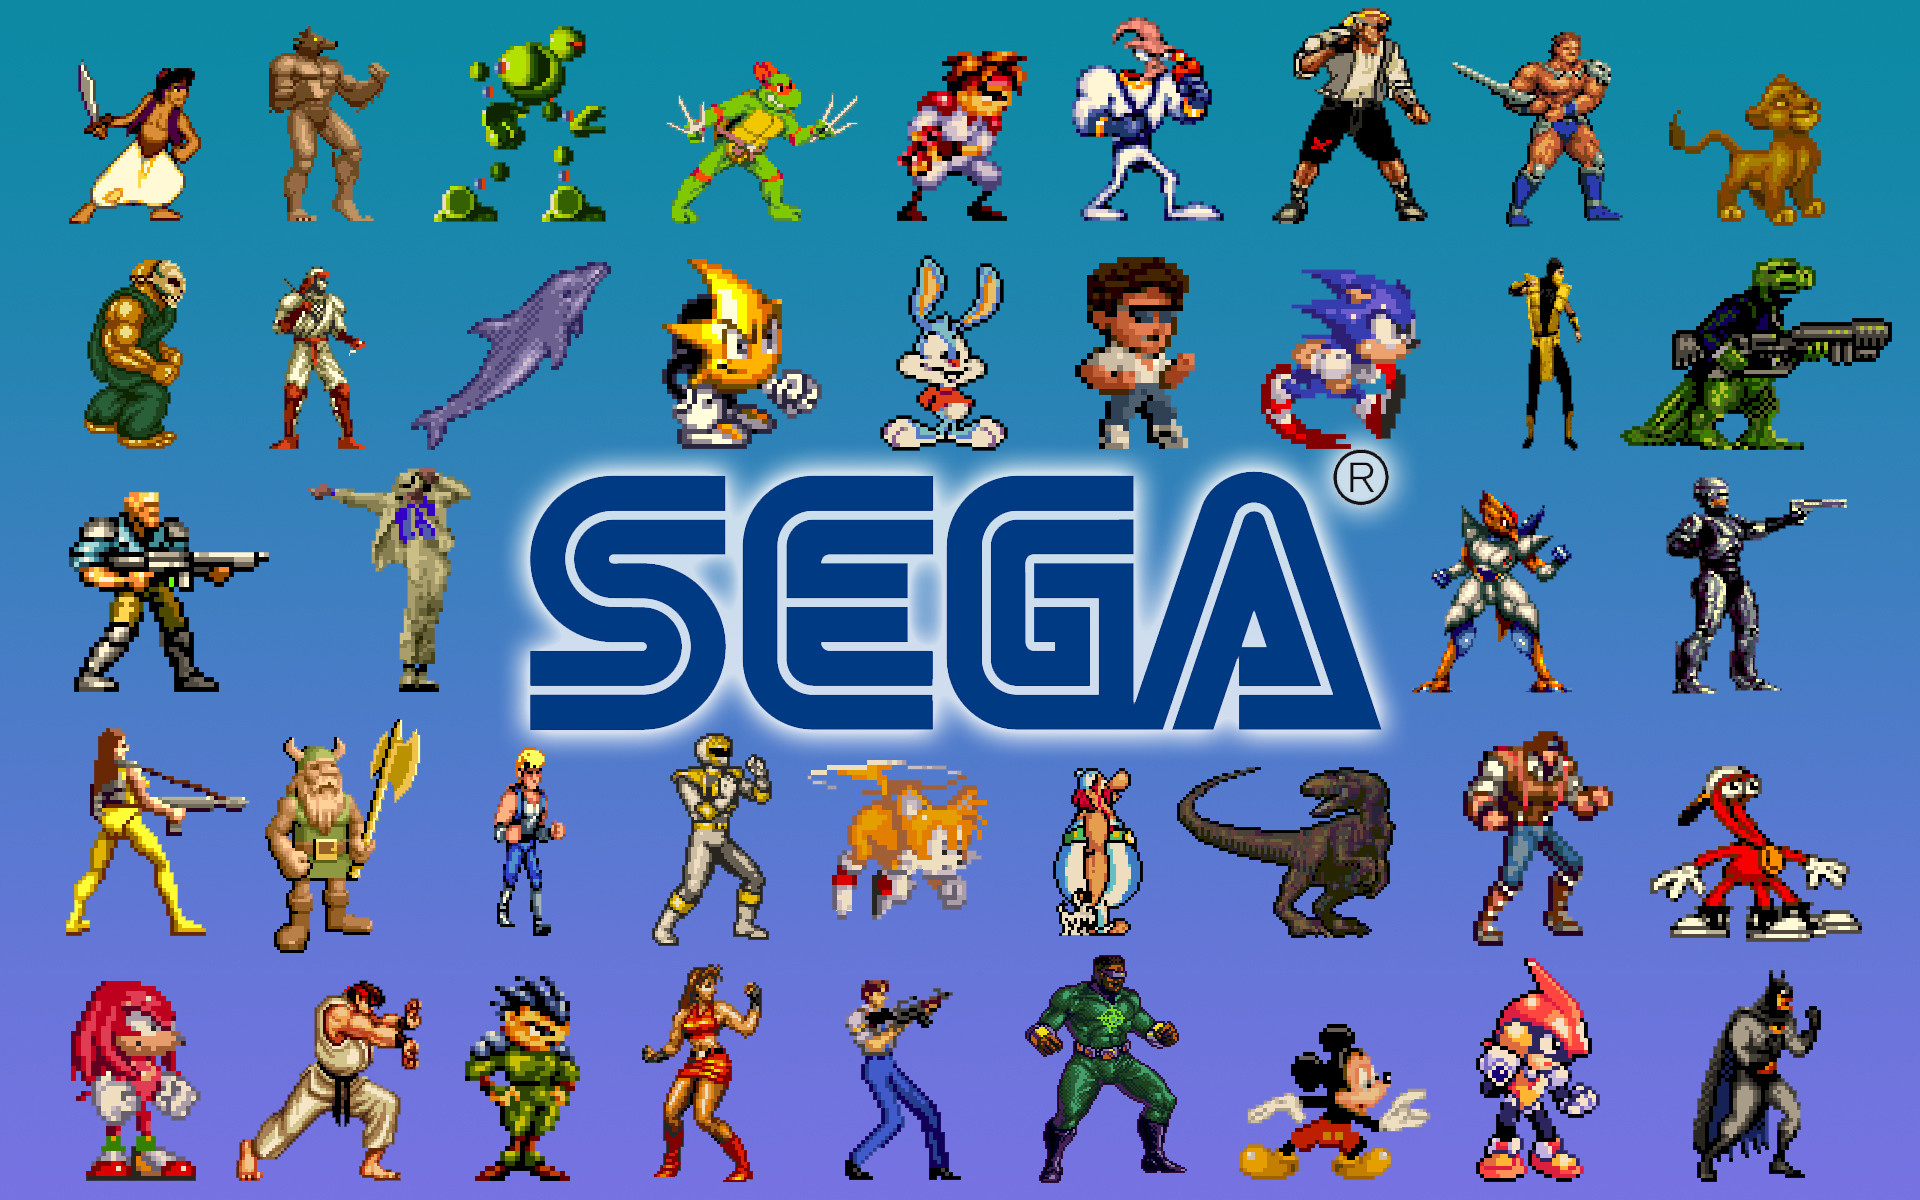 Retro Video Gaming images sega genesis all stars HD wallpaper and  background photos